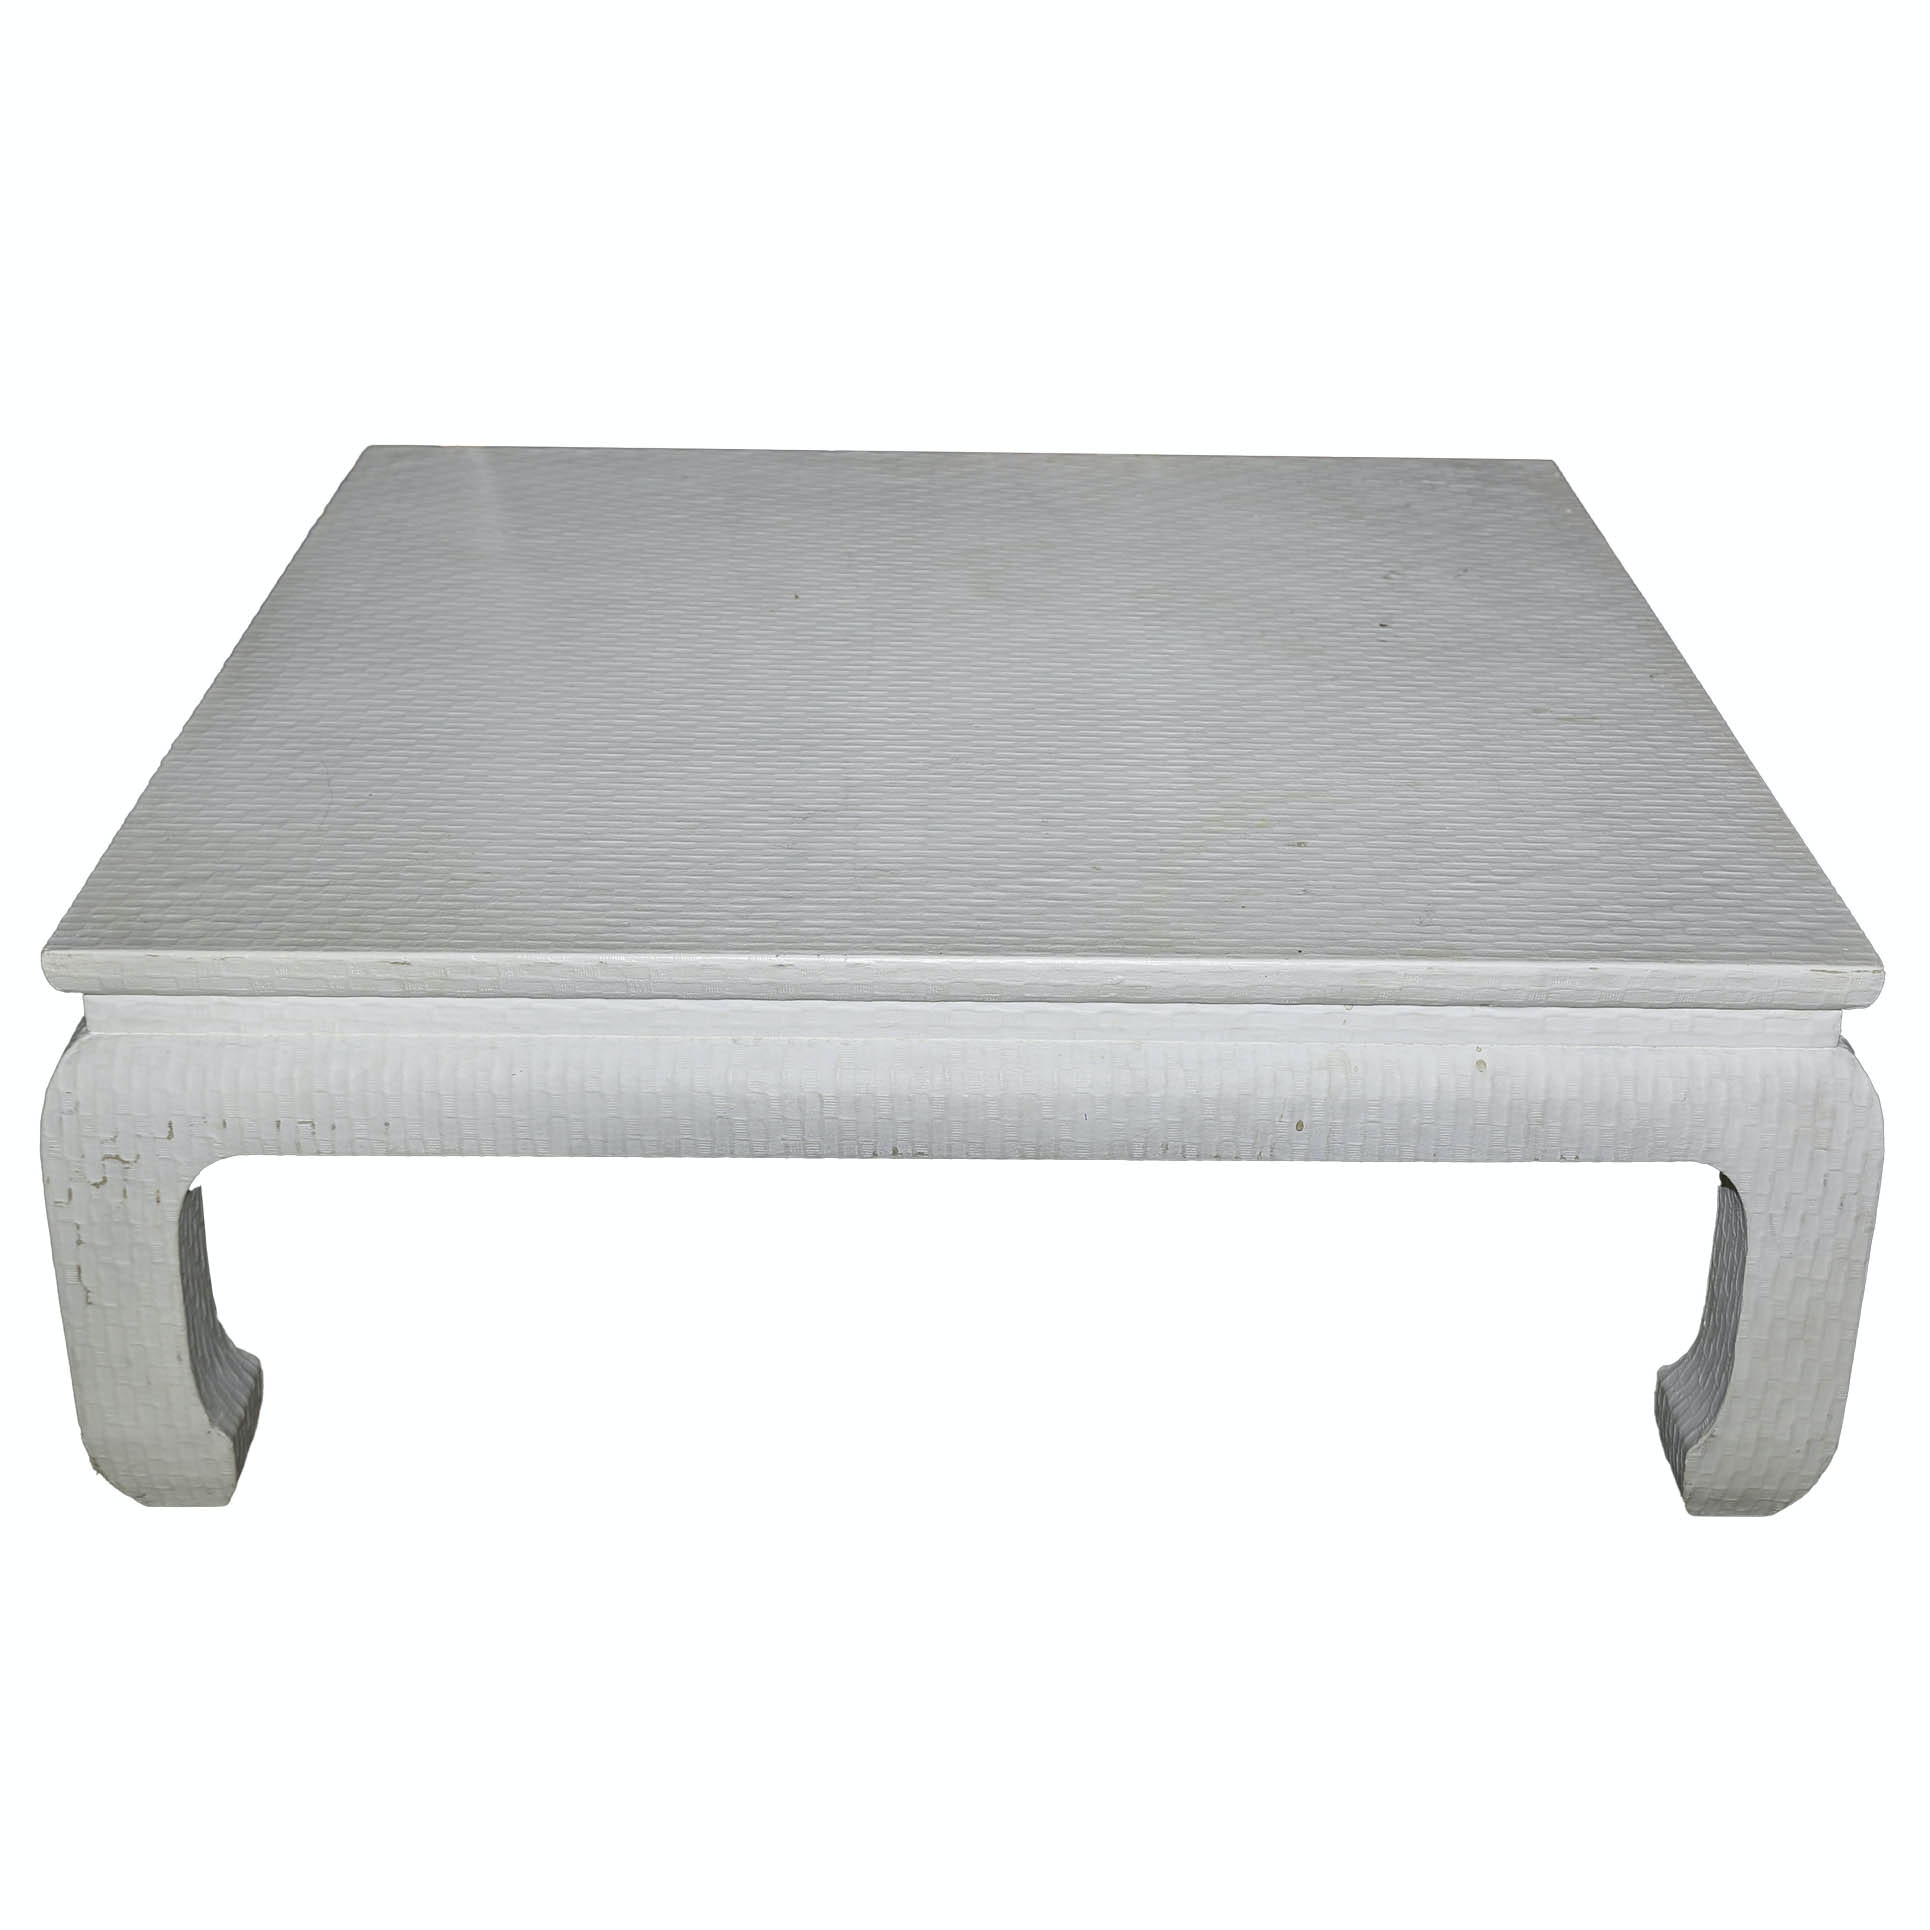 Chinoiserie Style Grasscloth Covered Coffee Table by Baker Furniture